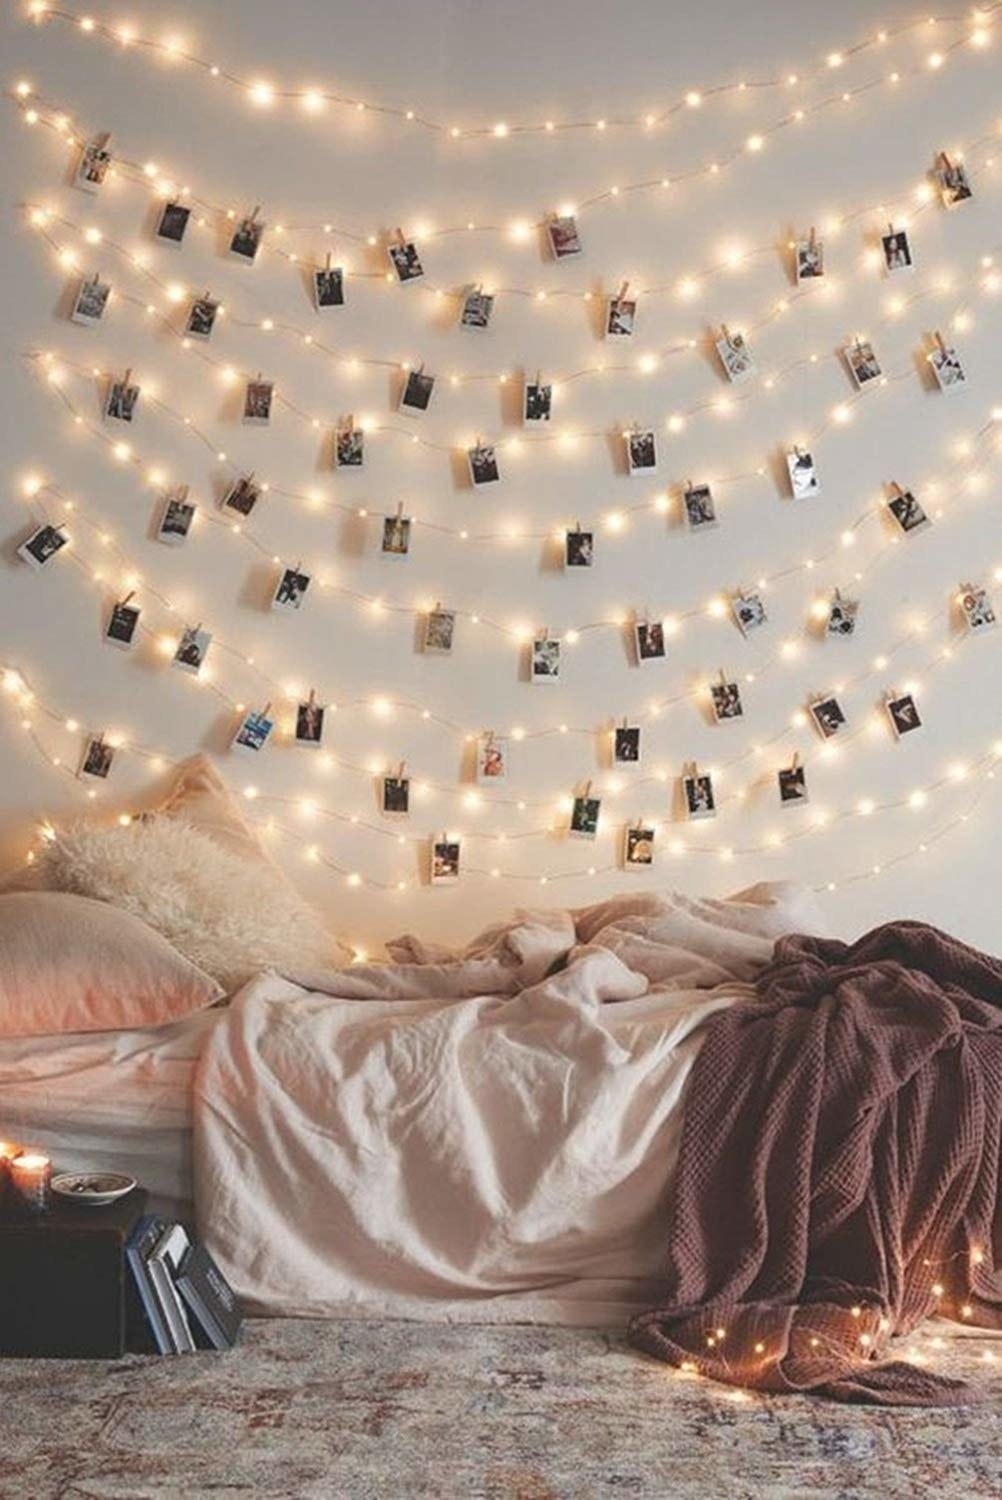 Bed with twinkle lights on wall above